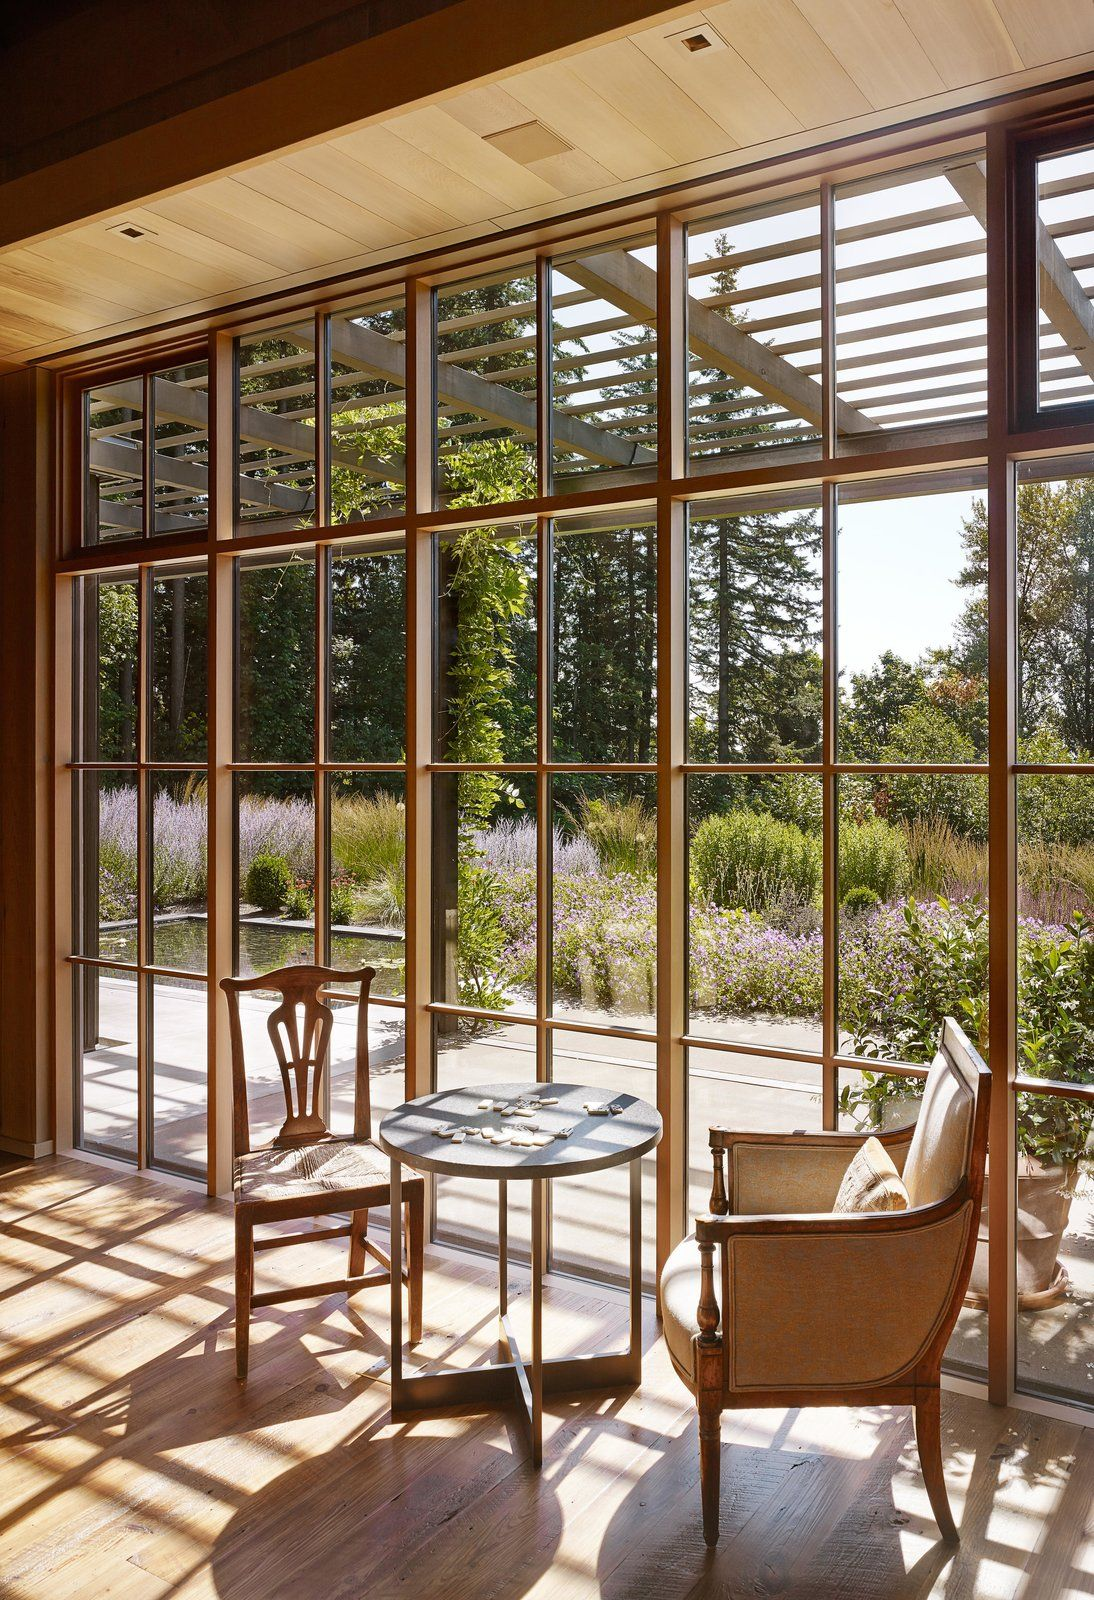 Seating areas by windows take full advantage of the views.